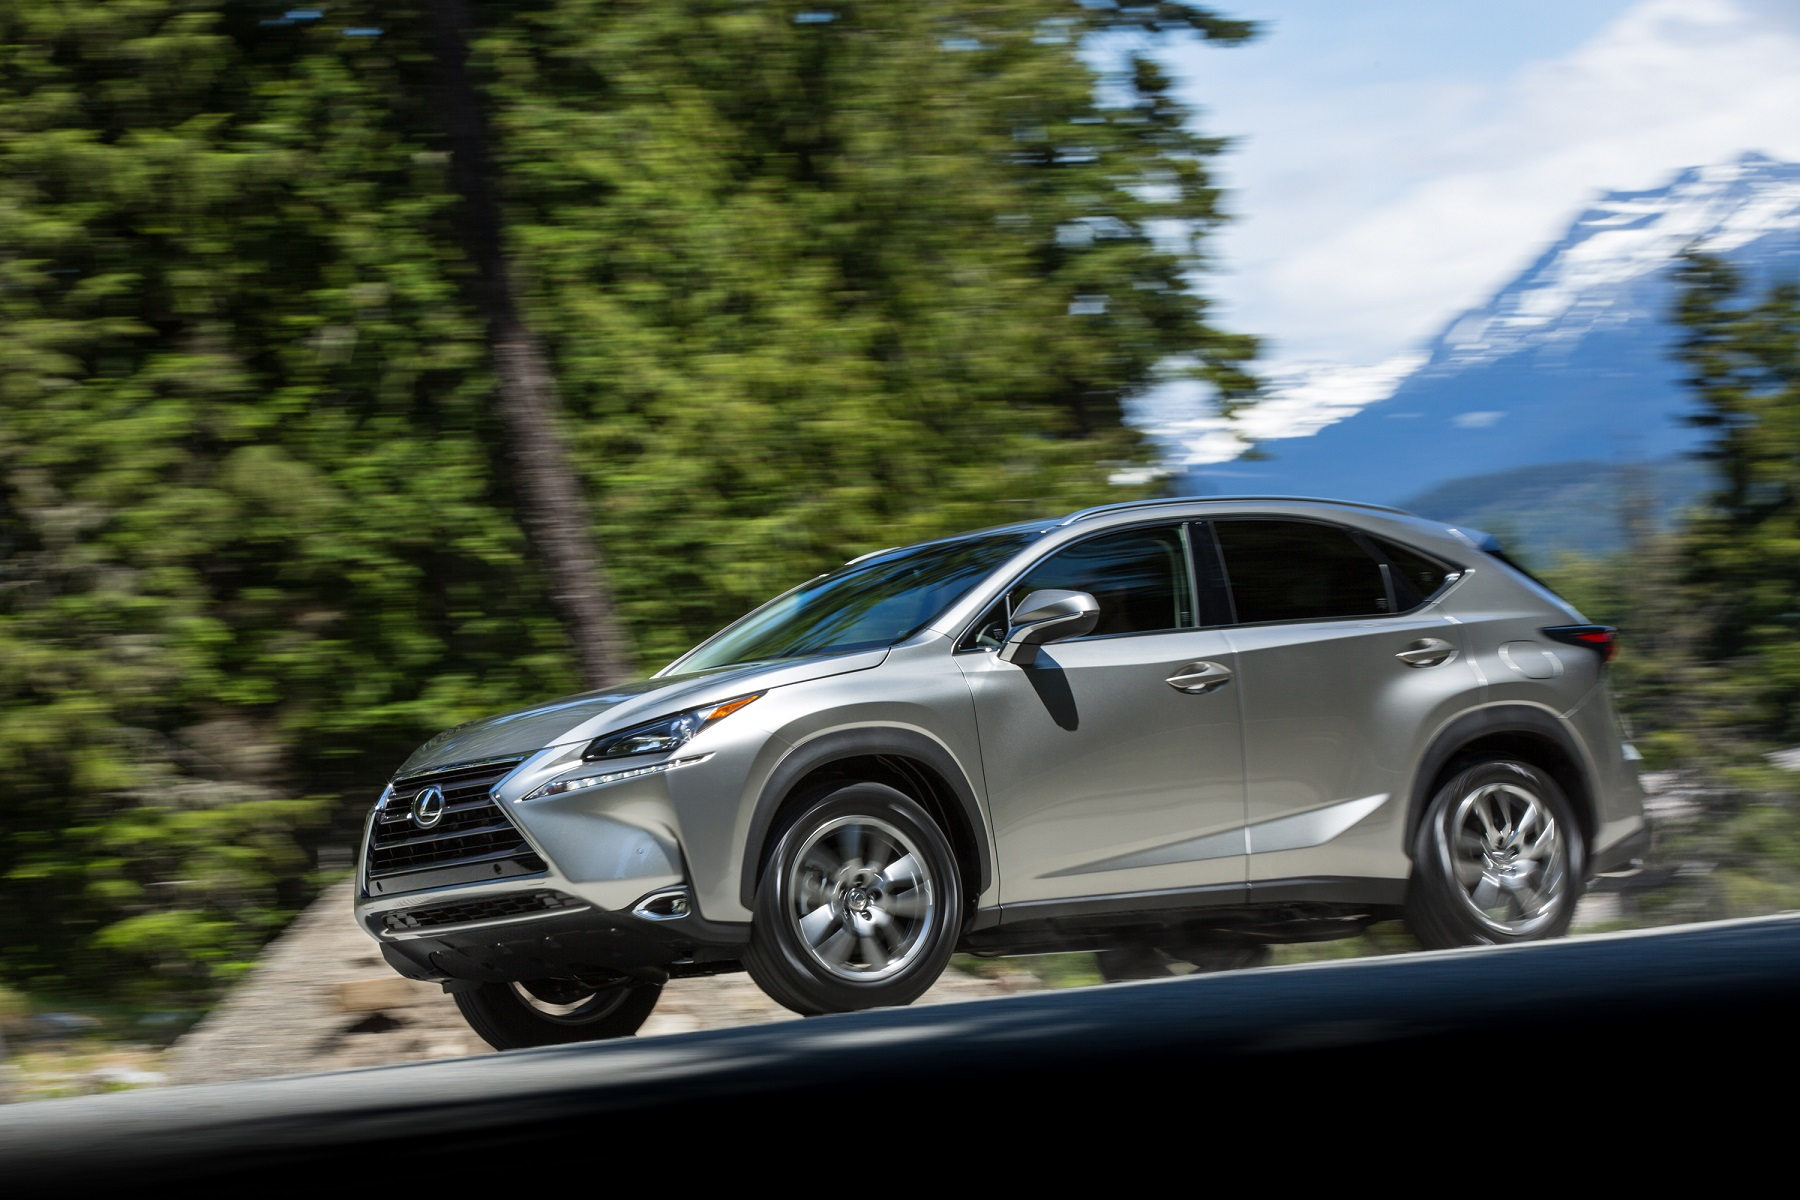 lexus nx 200t in the red hot compact luxe utility class. Black Bedroom Furniture Sets. Home Design Ideas